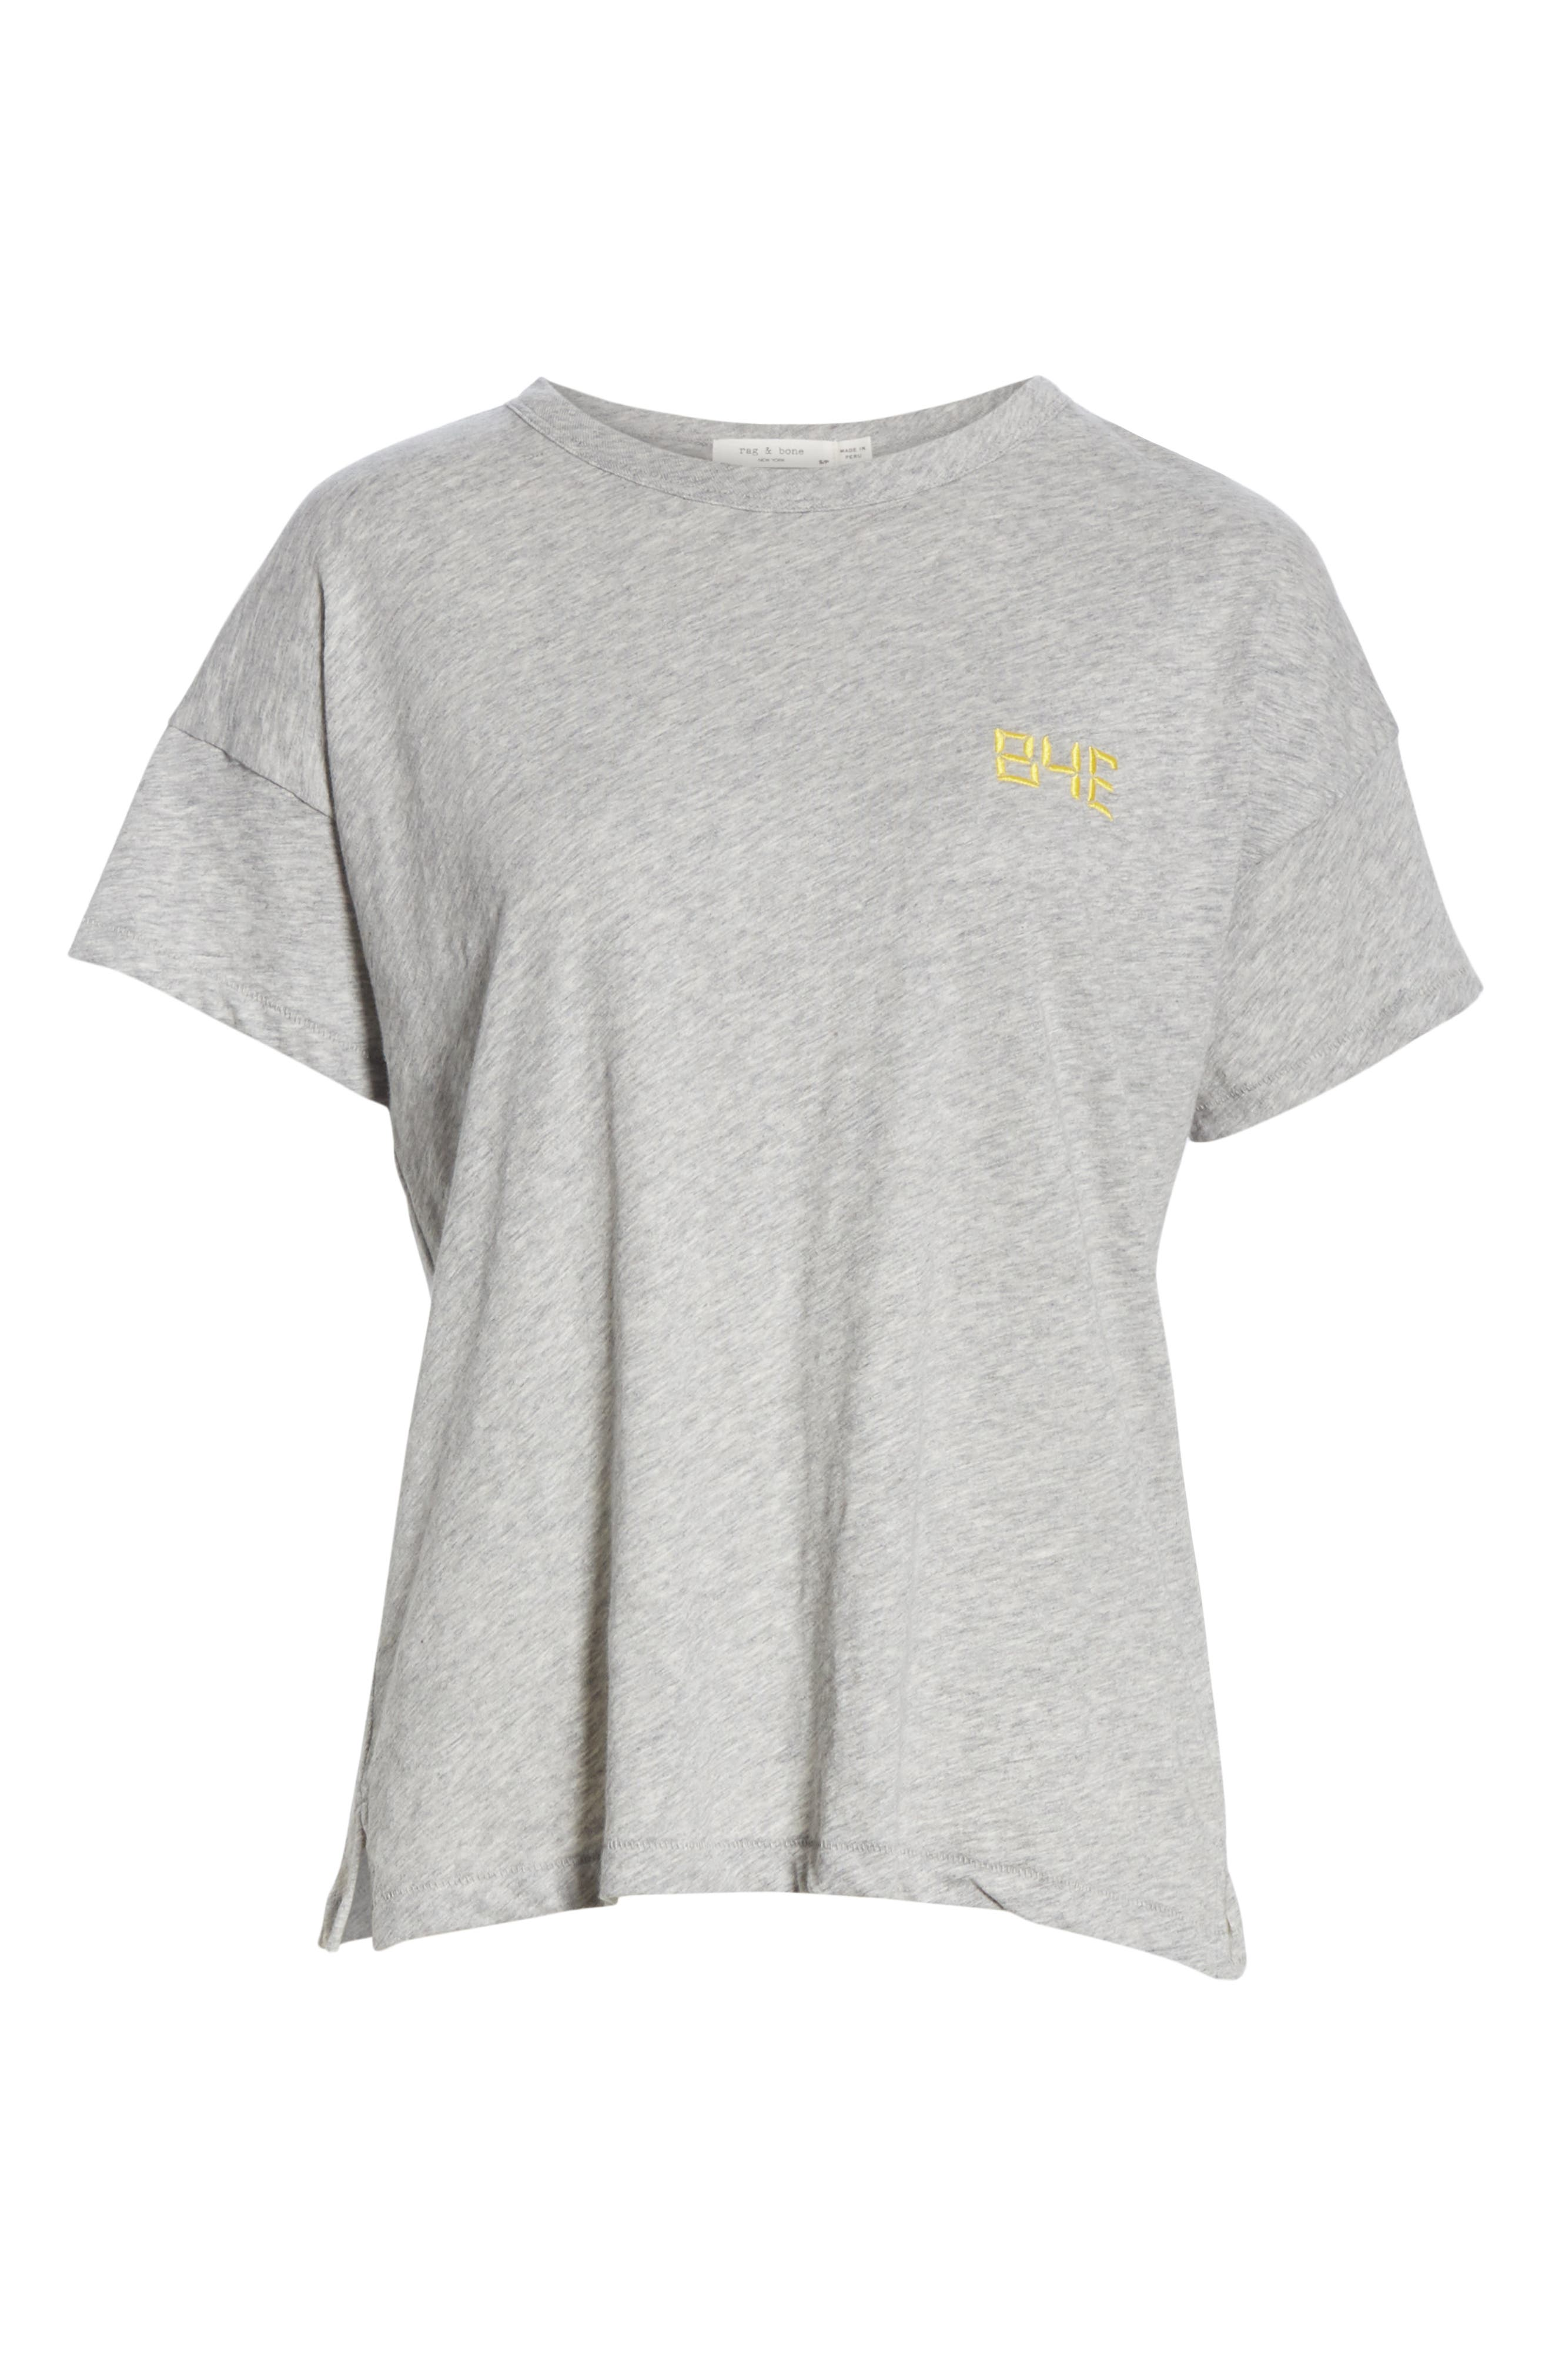 Bye Embroidered Tee,                             Alternate thumbnail 6, color,                             HEATHER GREY